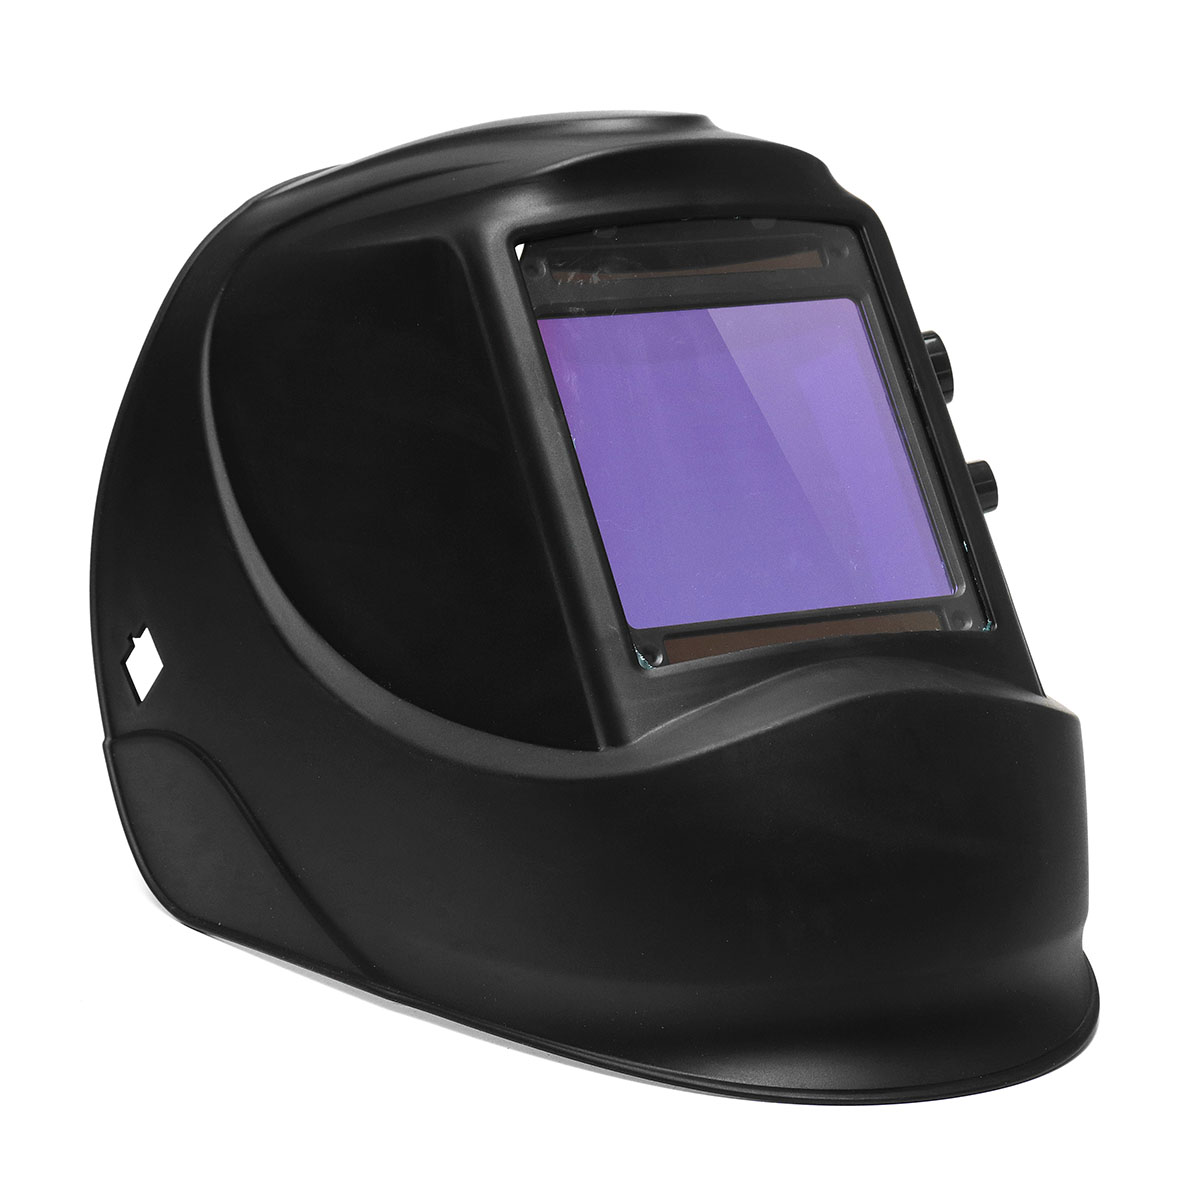 Solar Power Automatic Dimming Welding Helmet Grinding Mask Big Len Vision